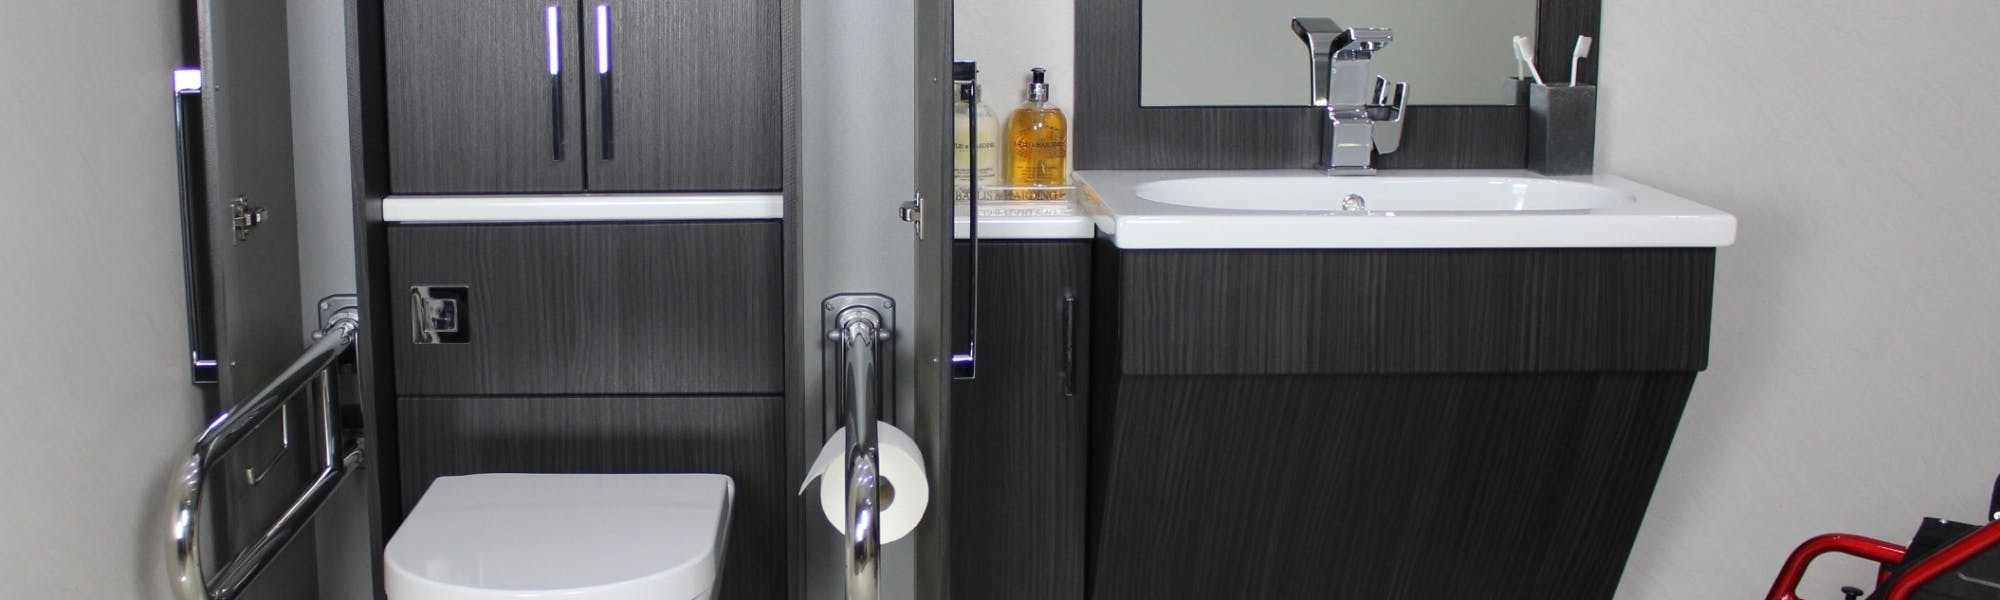 Our range of height conscious, user-friendly & accessible bathroom storage & furniture is tailored to make your daily bathing rituals even safer.